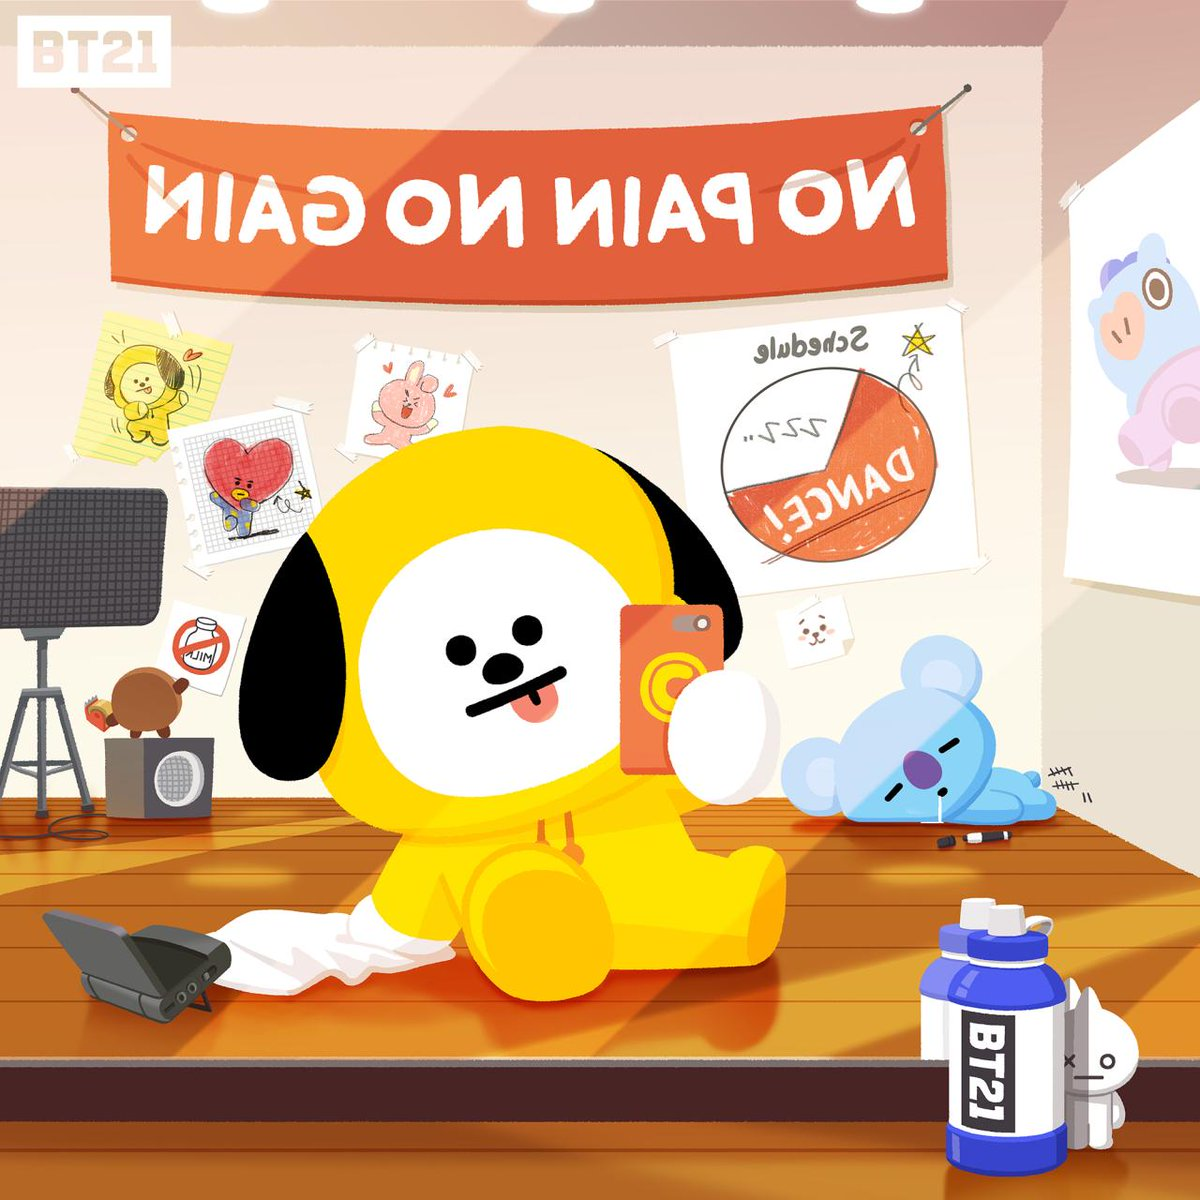 BT21's photo on #selfie